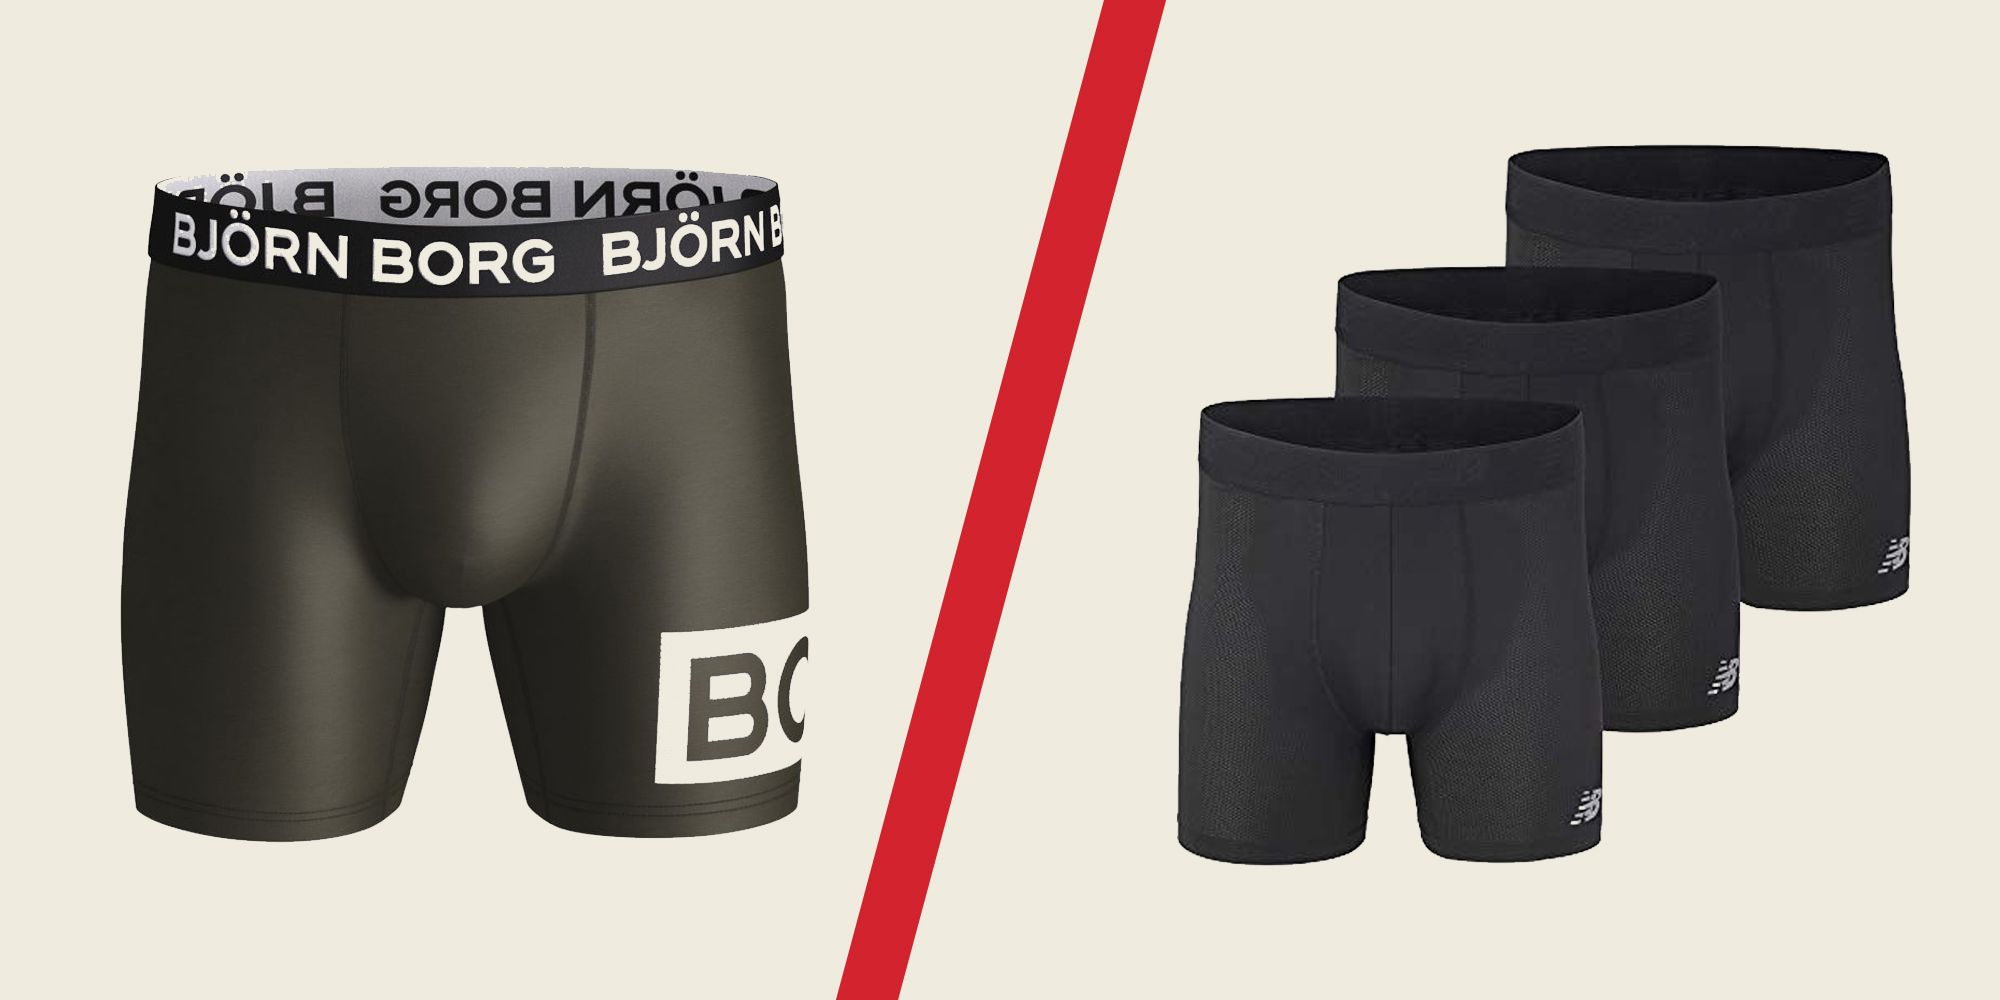 9 of the Best, Comfiest and Stylish Pairs of Men's Underwear For Any Guy